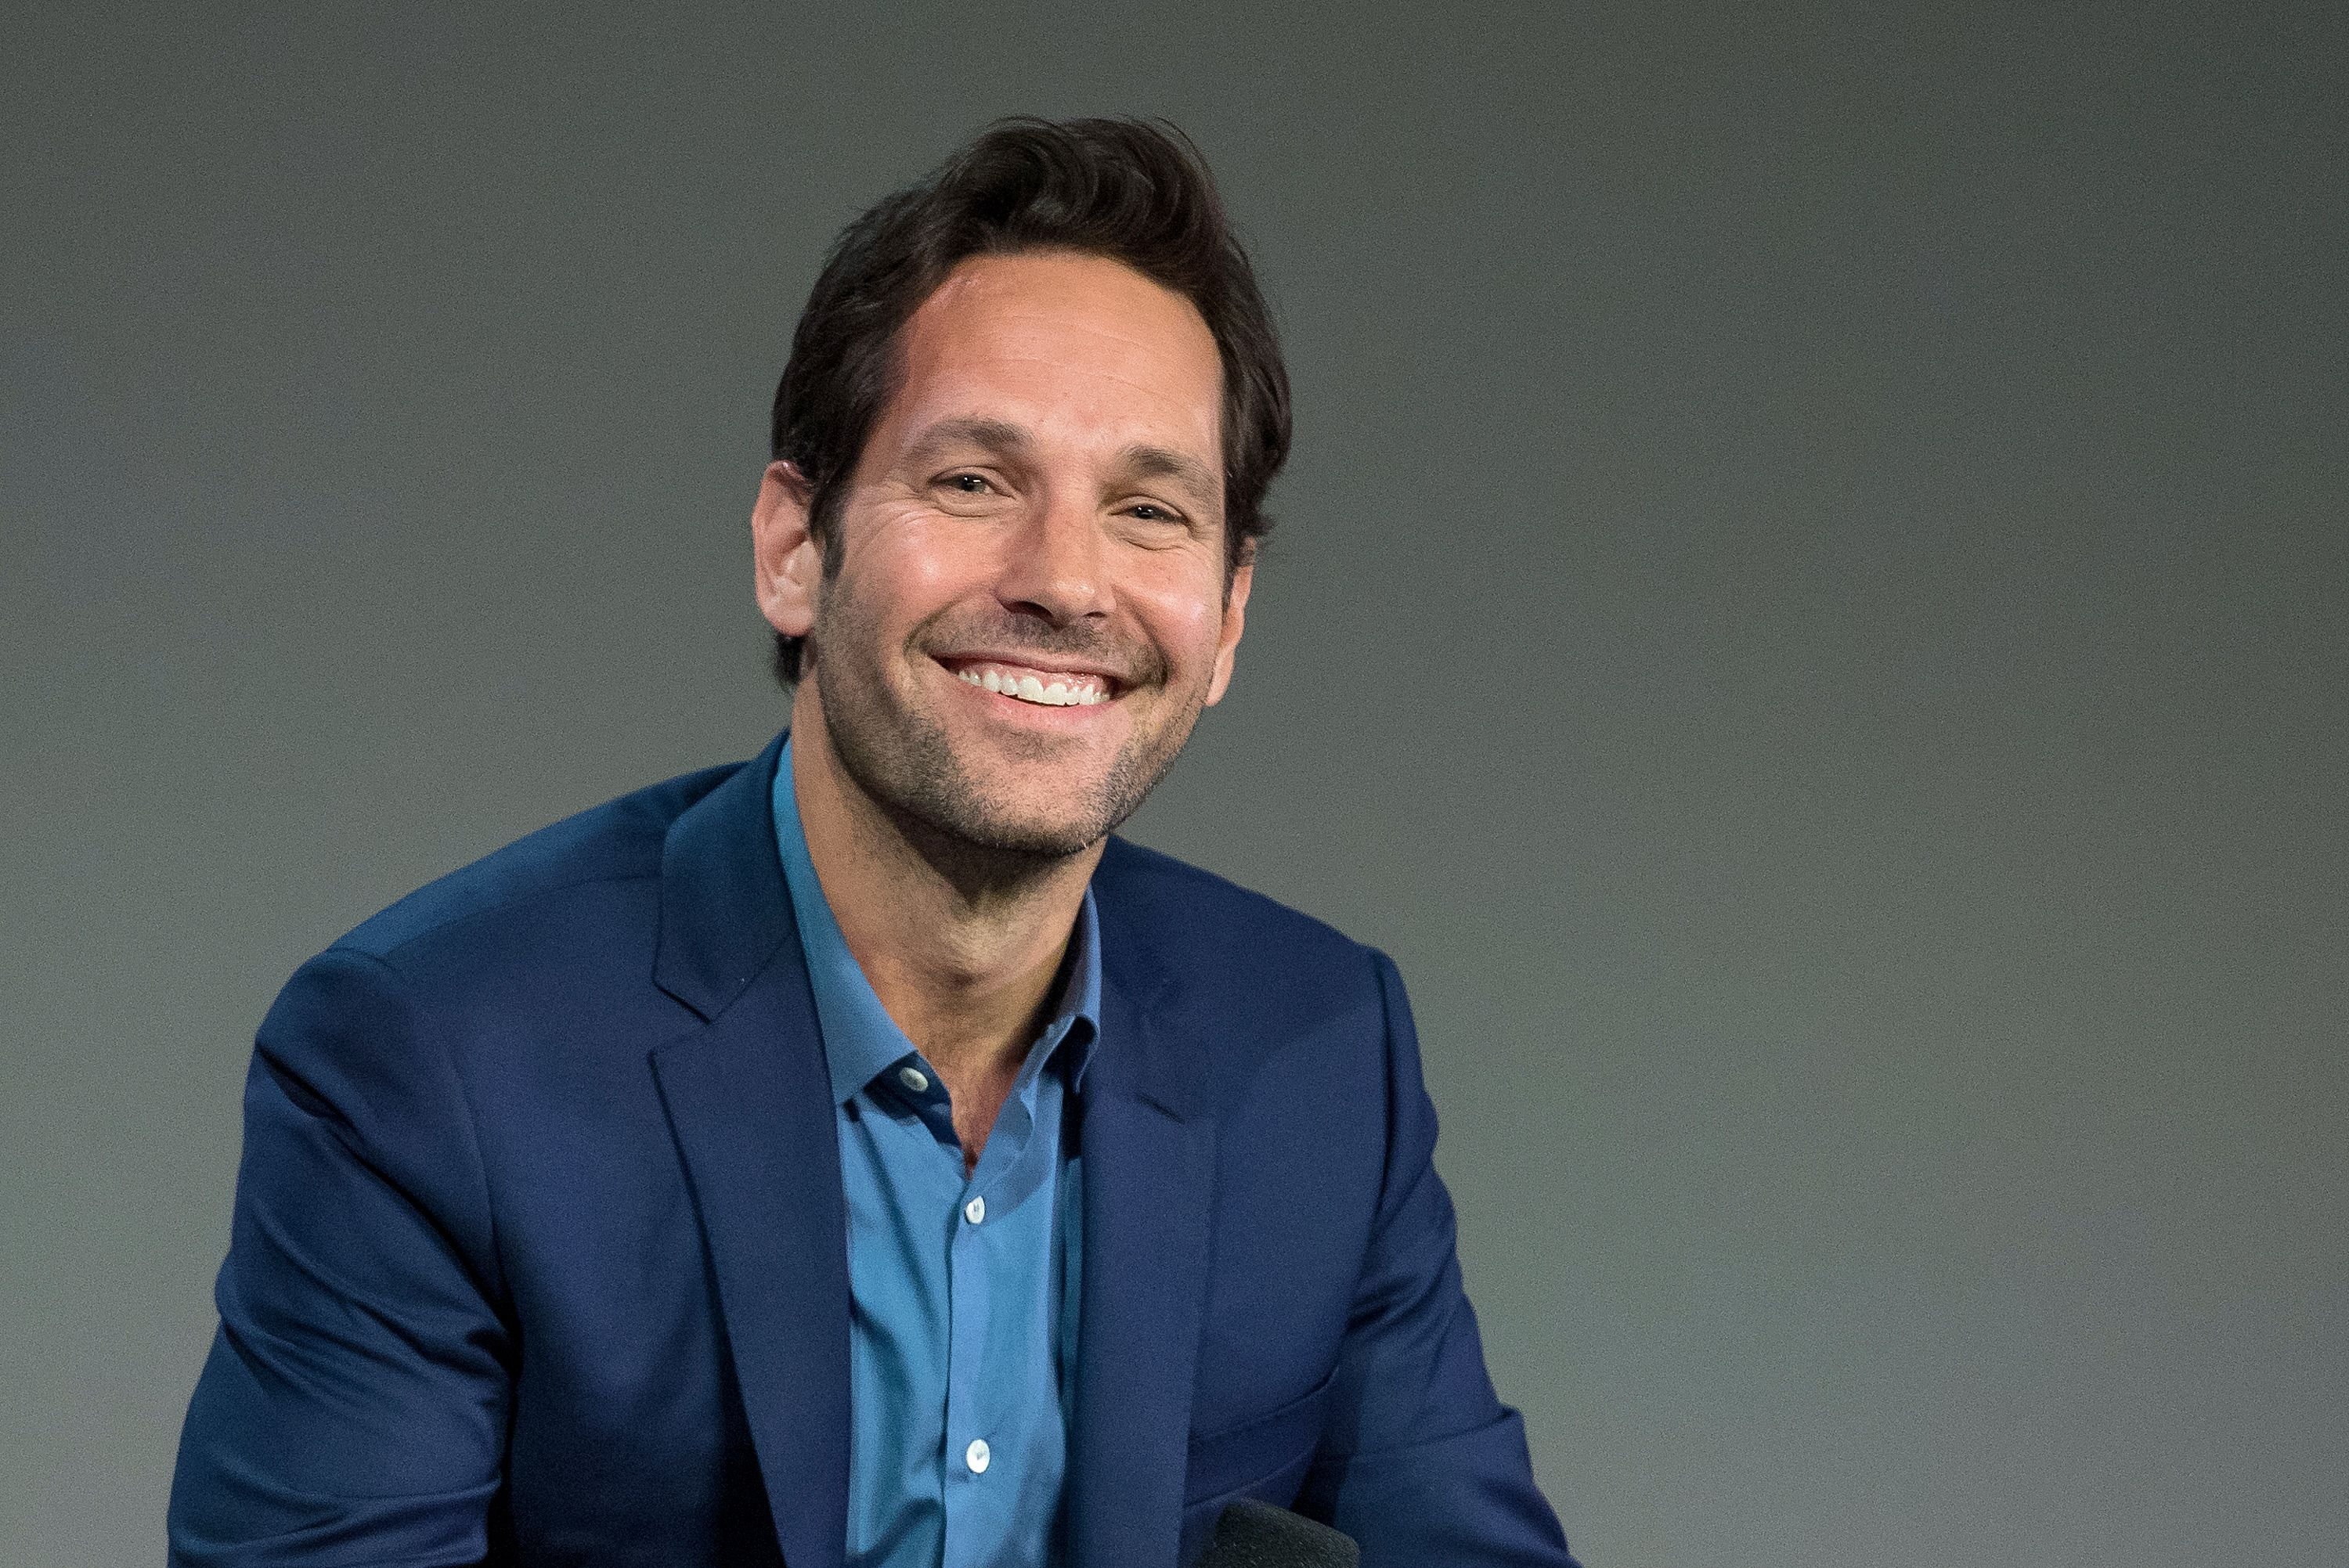 Paul Rudd's Net Worth Proves He's Made a Lot of Money Playing Ant-Man